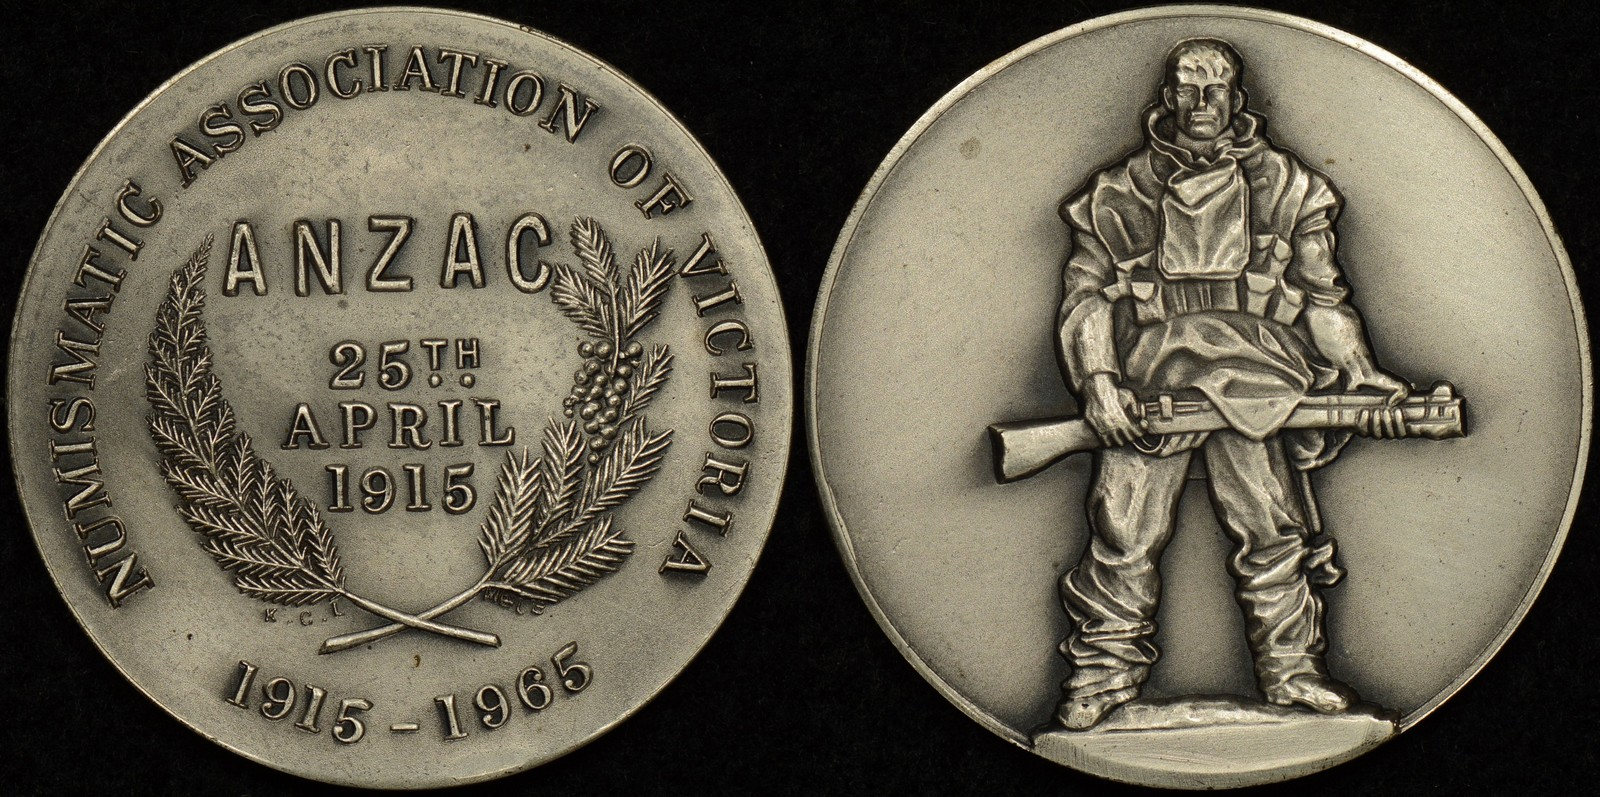 Numismatic Association of Victoria 1965 ANZAC Day Golden Jubilee Silver Medal